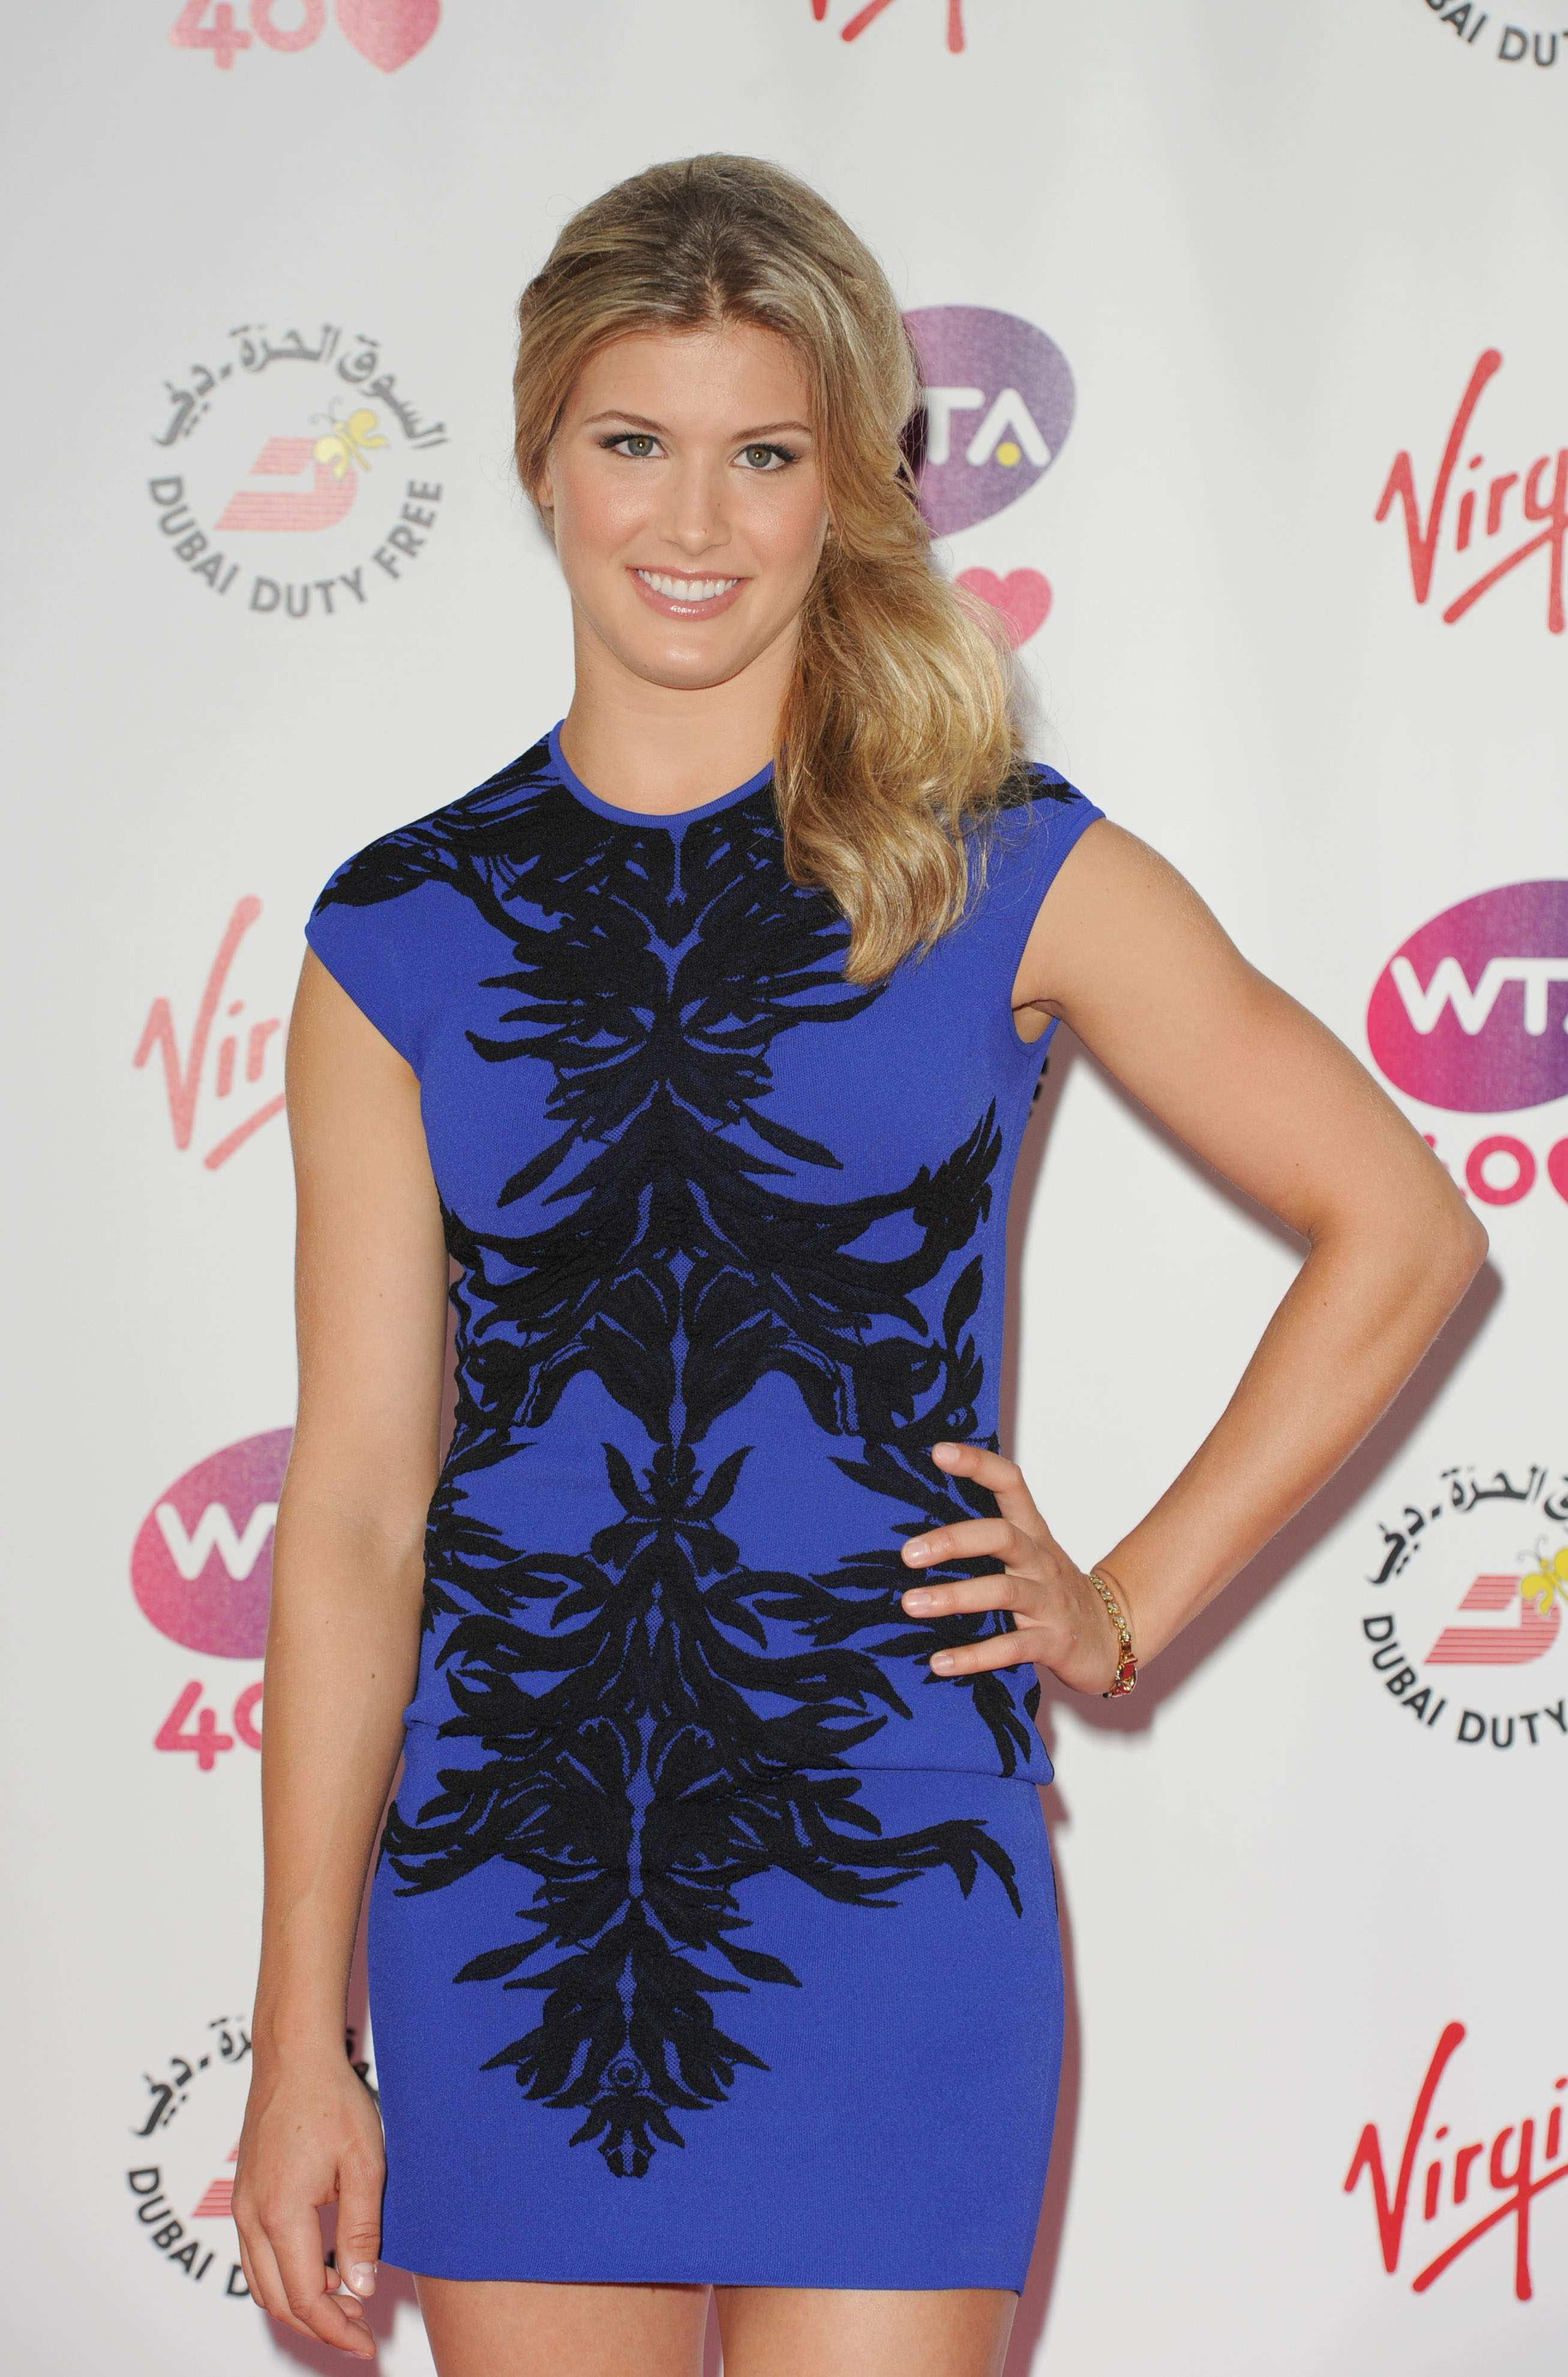 Eugenie Bouchard Pre Wimbledon Party Held At The Kensington Roof Gardens June 20 2013 Wta Eugenie Bouchard Tennis Players Female Athletic Women